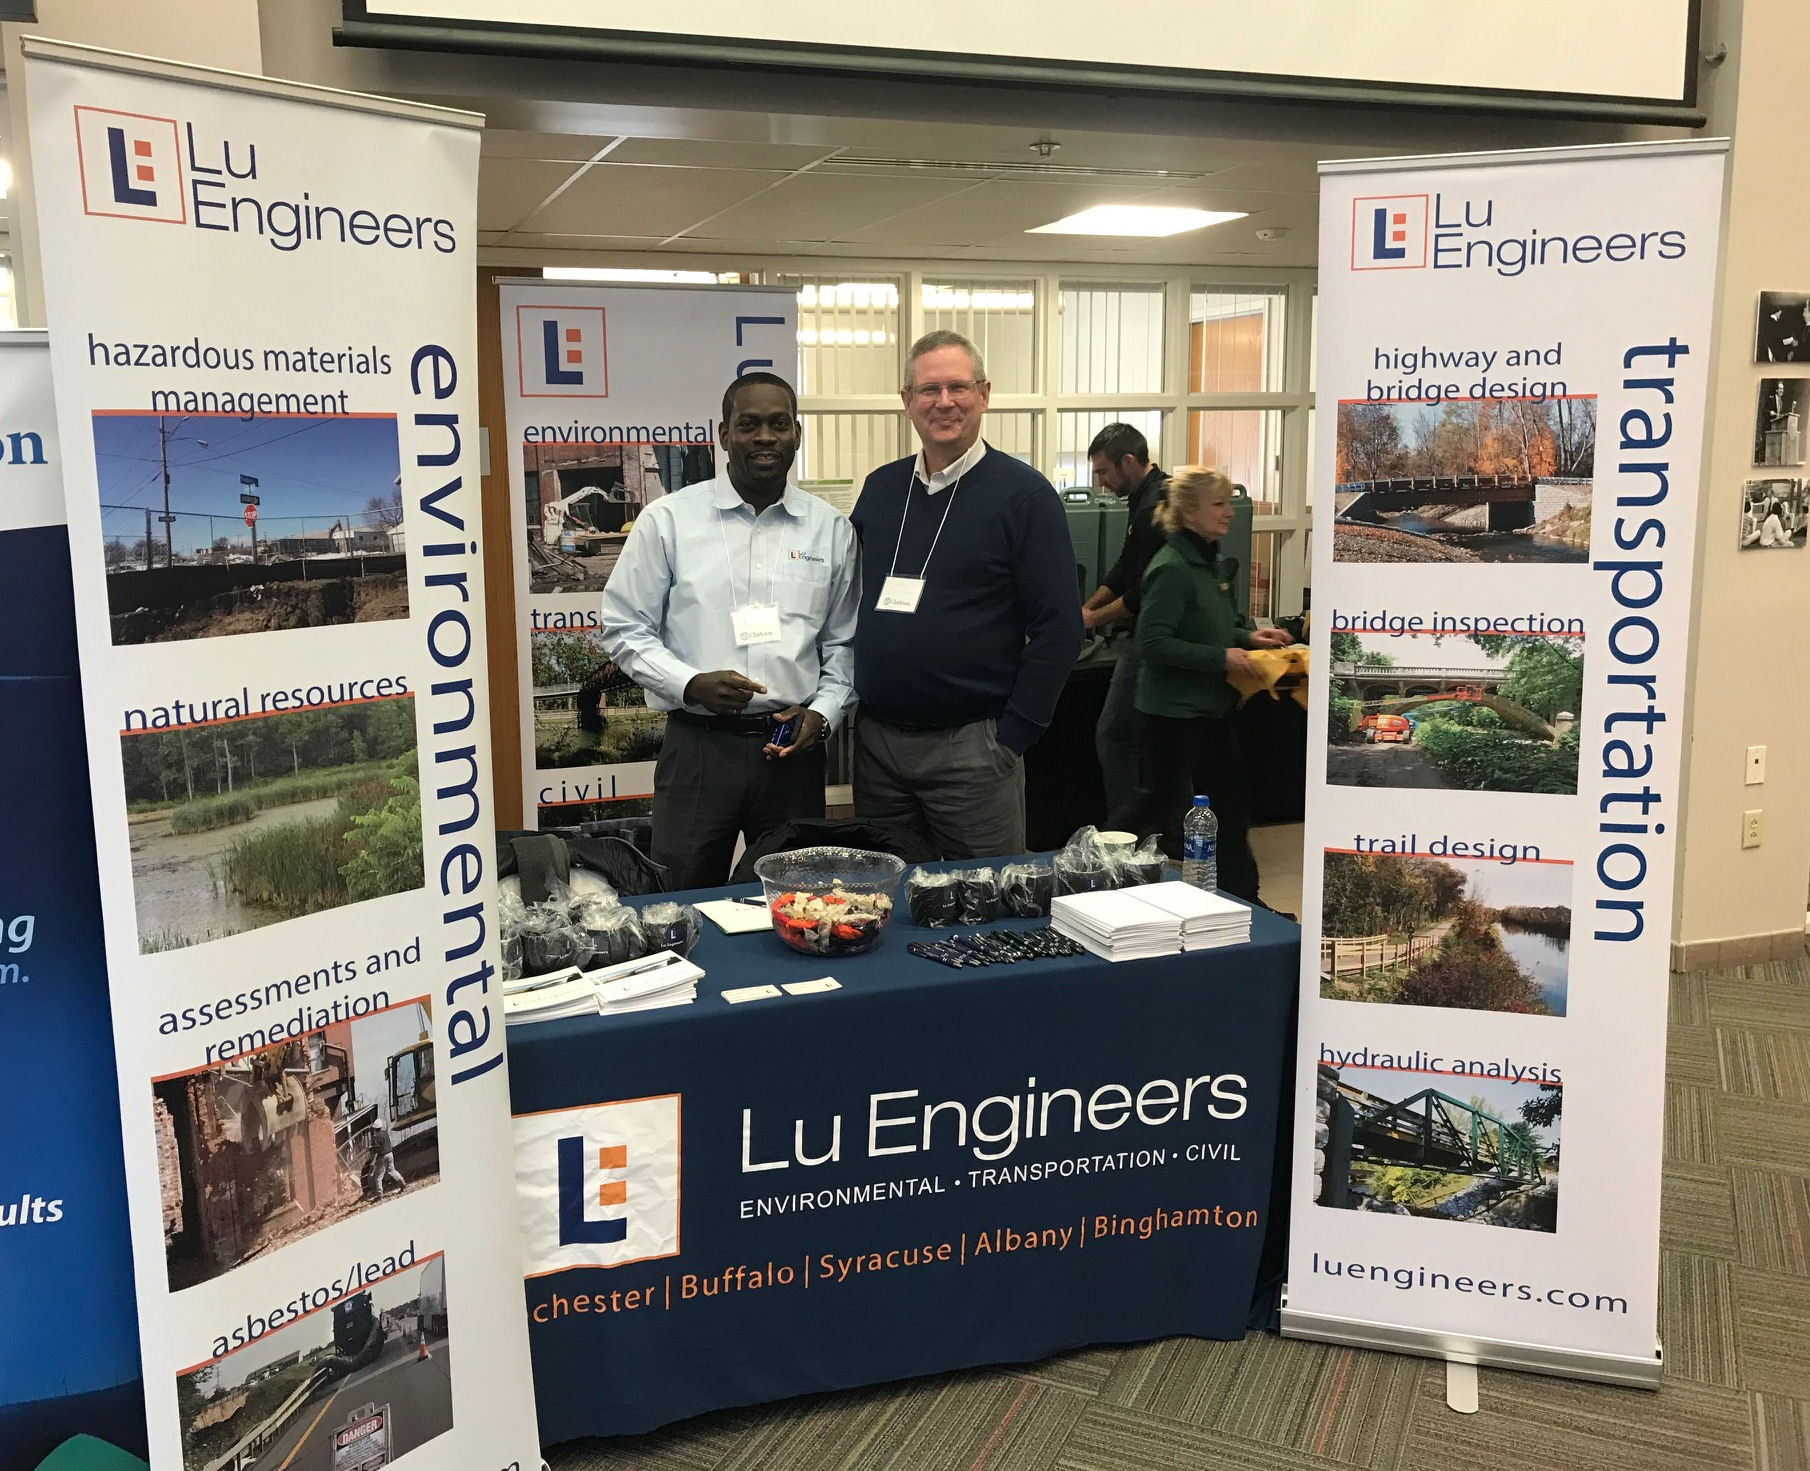 Lu Engineers at Career Fair